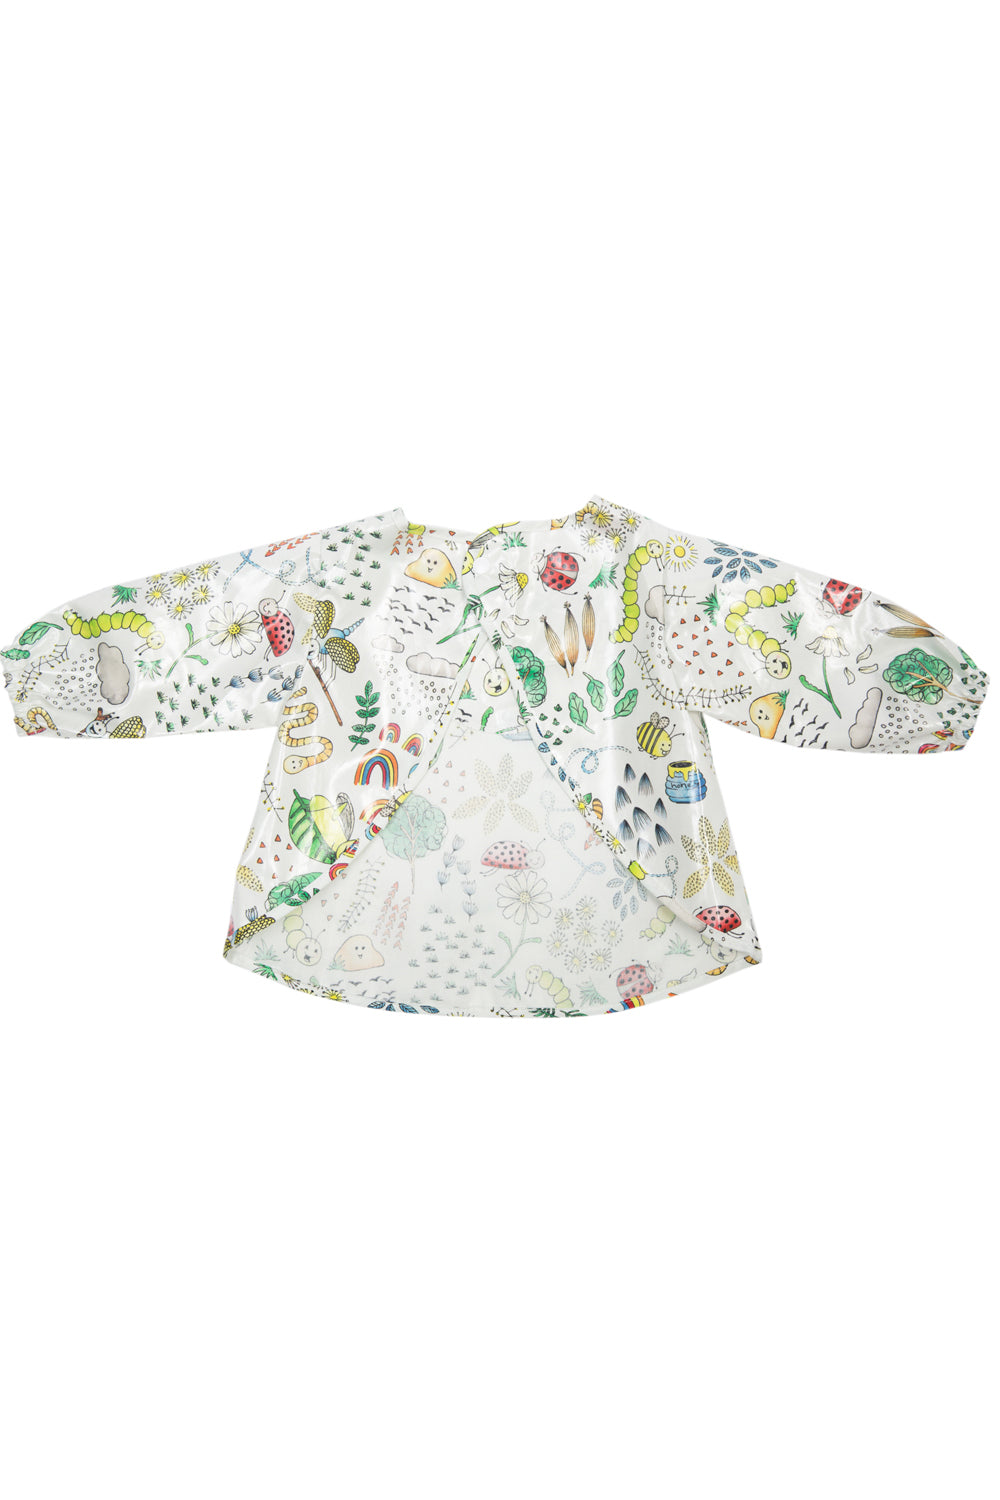 Little Creatures Long Sleeve Smock (Pre-Order Only)